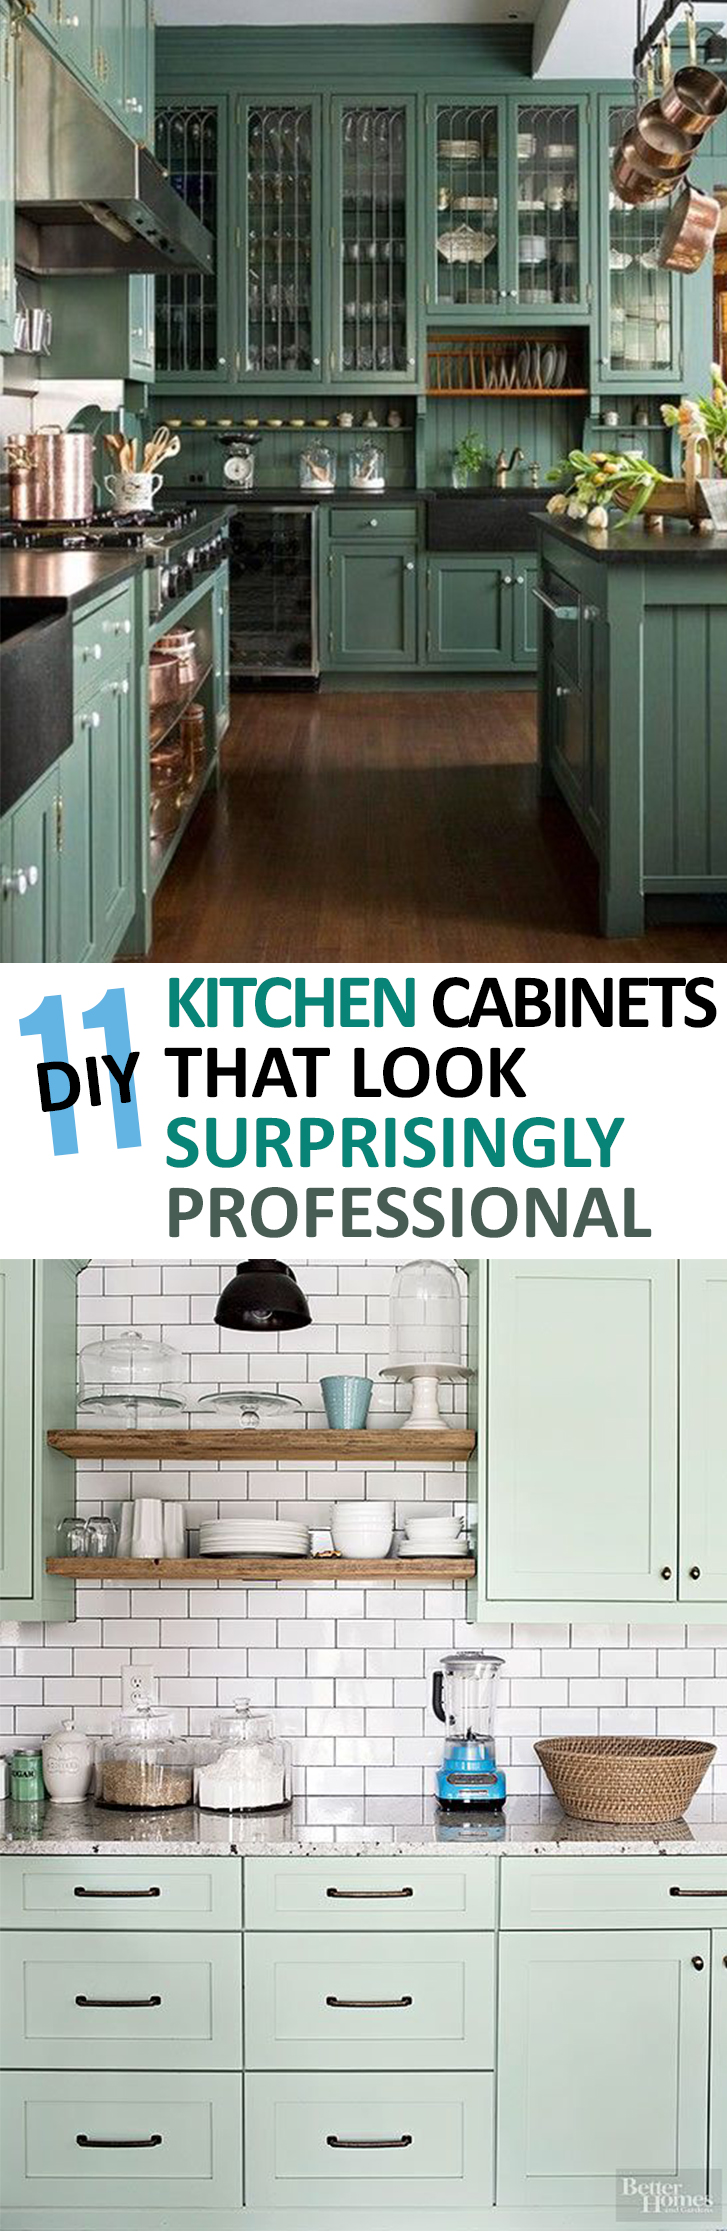 11 diy kitchen cabinets that look surprisingly professional for Kitchen cabinet trends 2018 combined with sticker dude